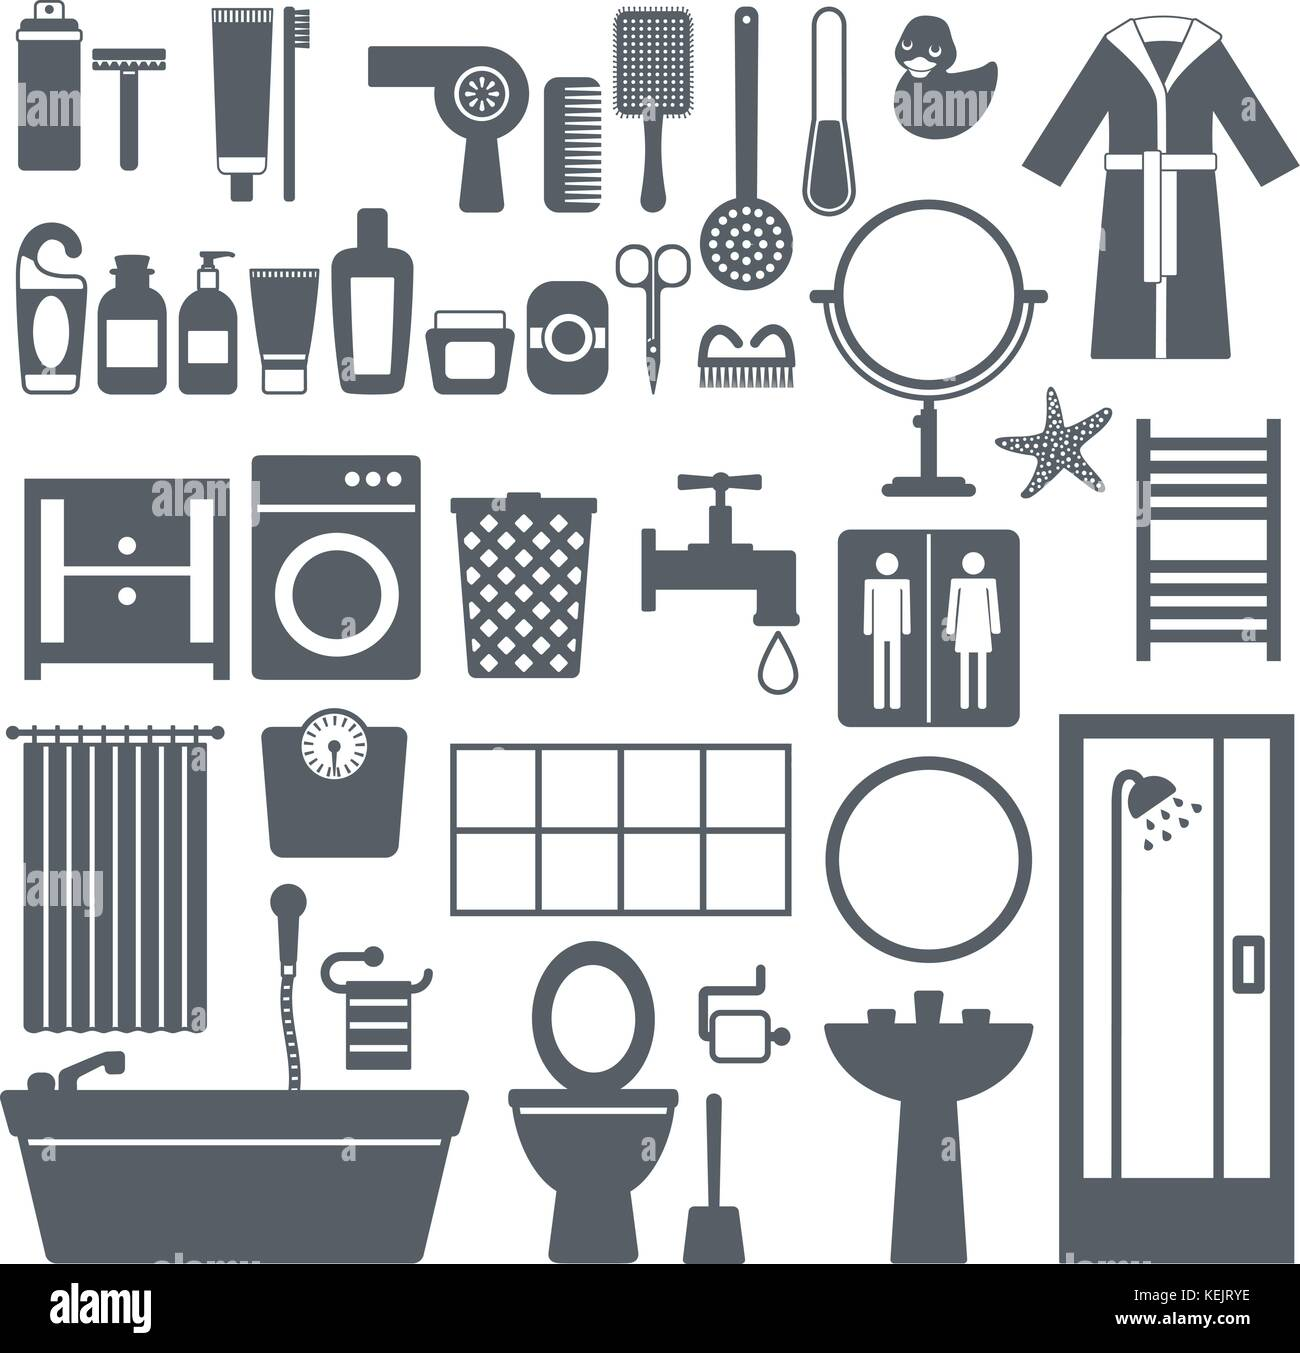 Bathroom furniture, accessories and cosmetics silhouette icons